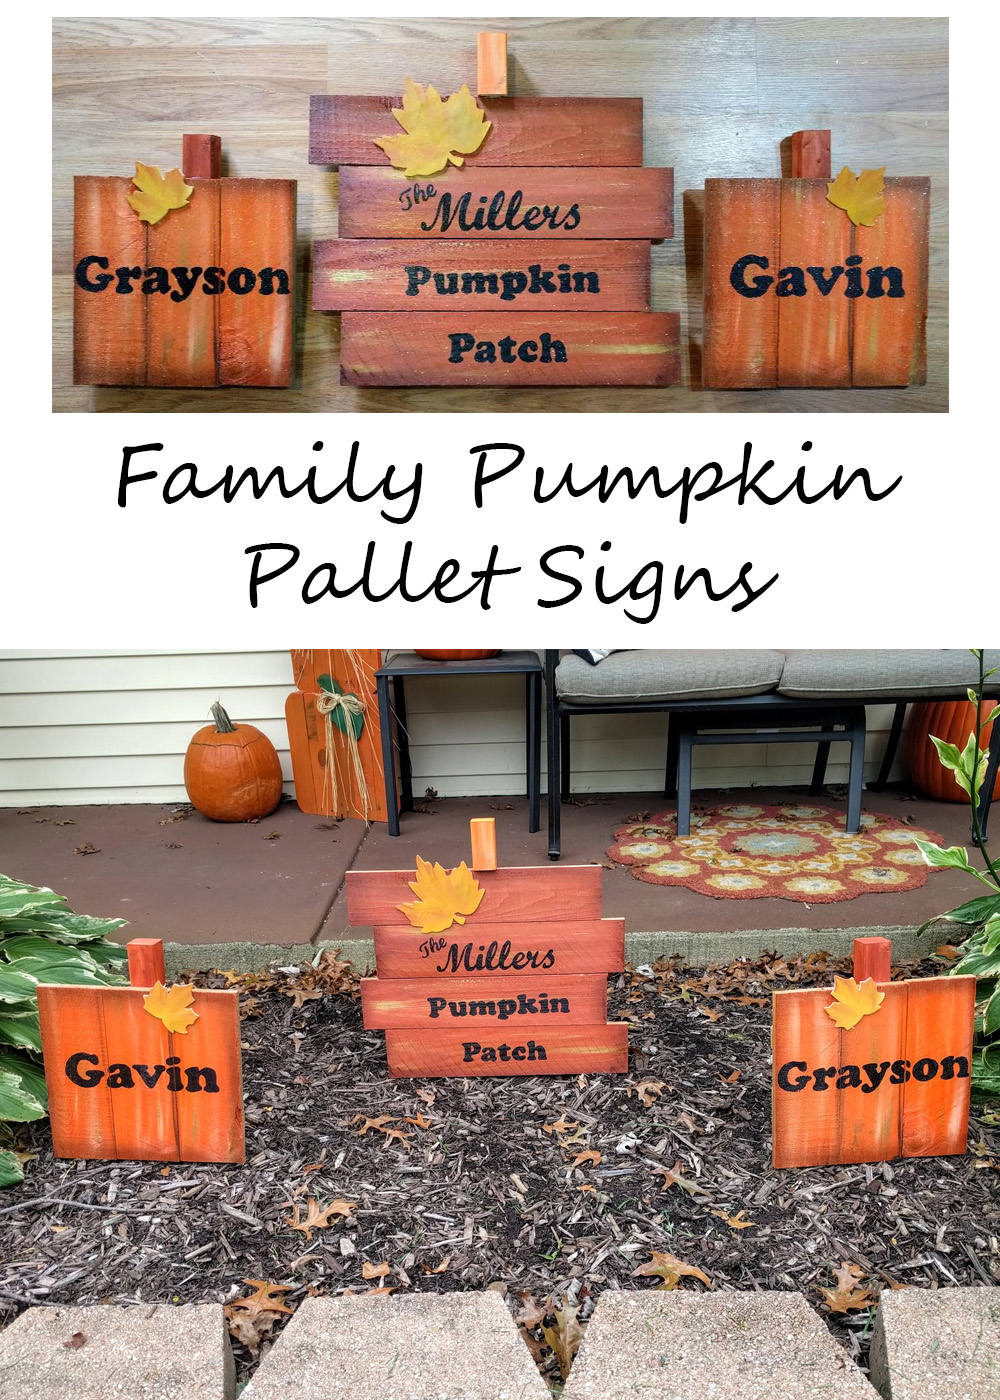 Family Pumpkin Pallet Signs